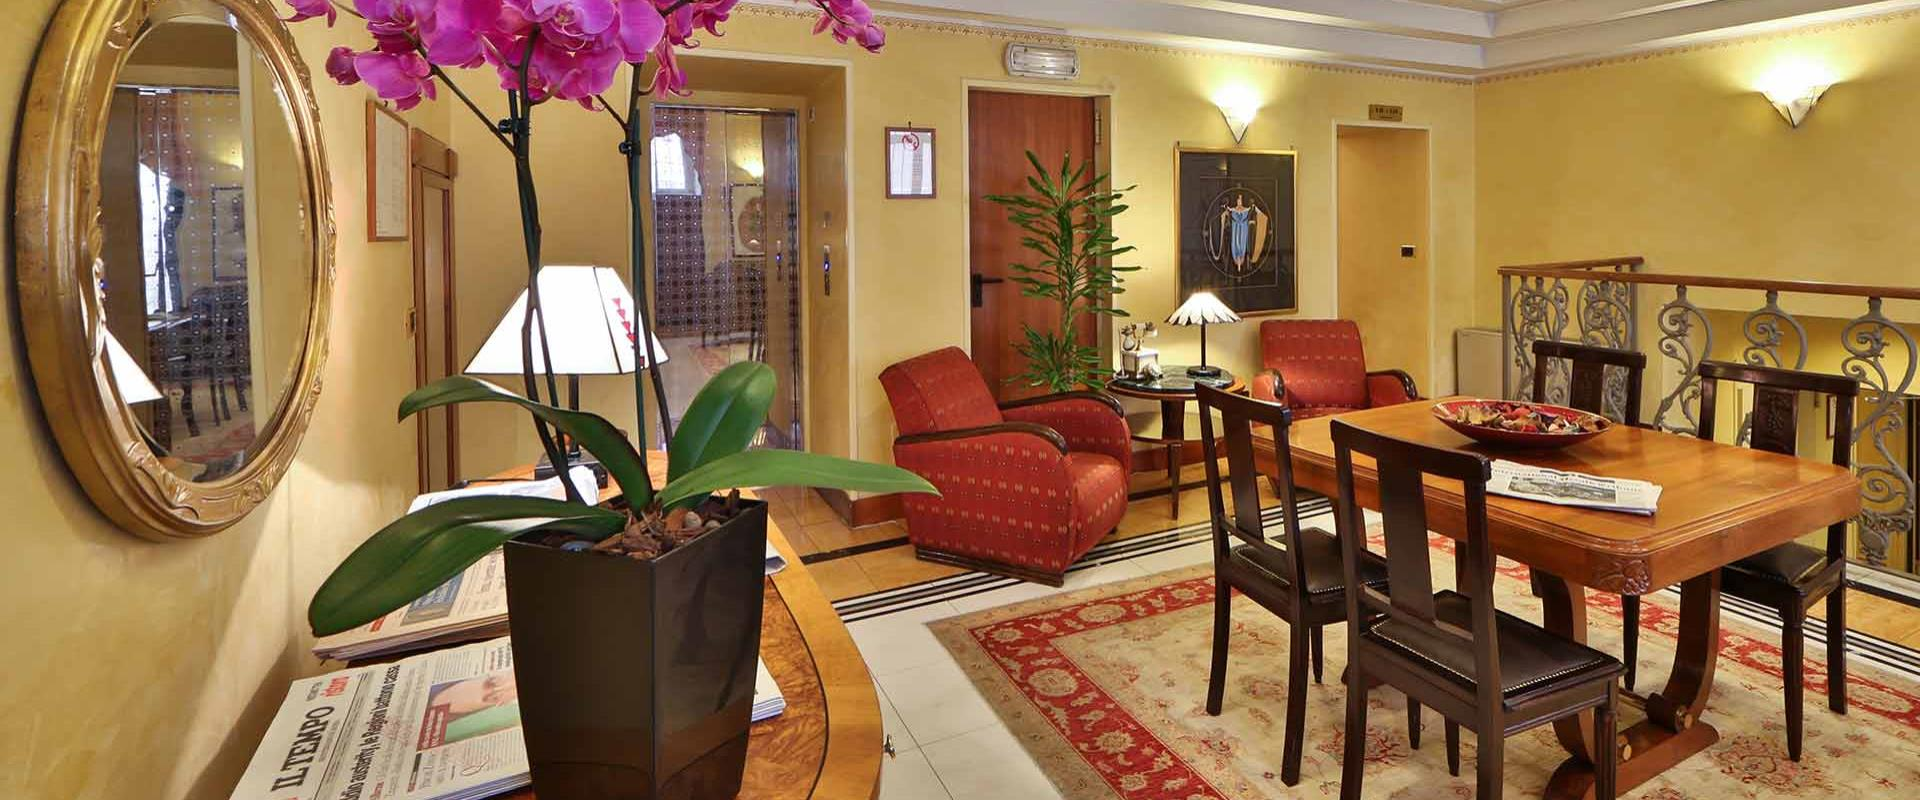 Book your stay in an elegant hotel in the city center of Rome